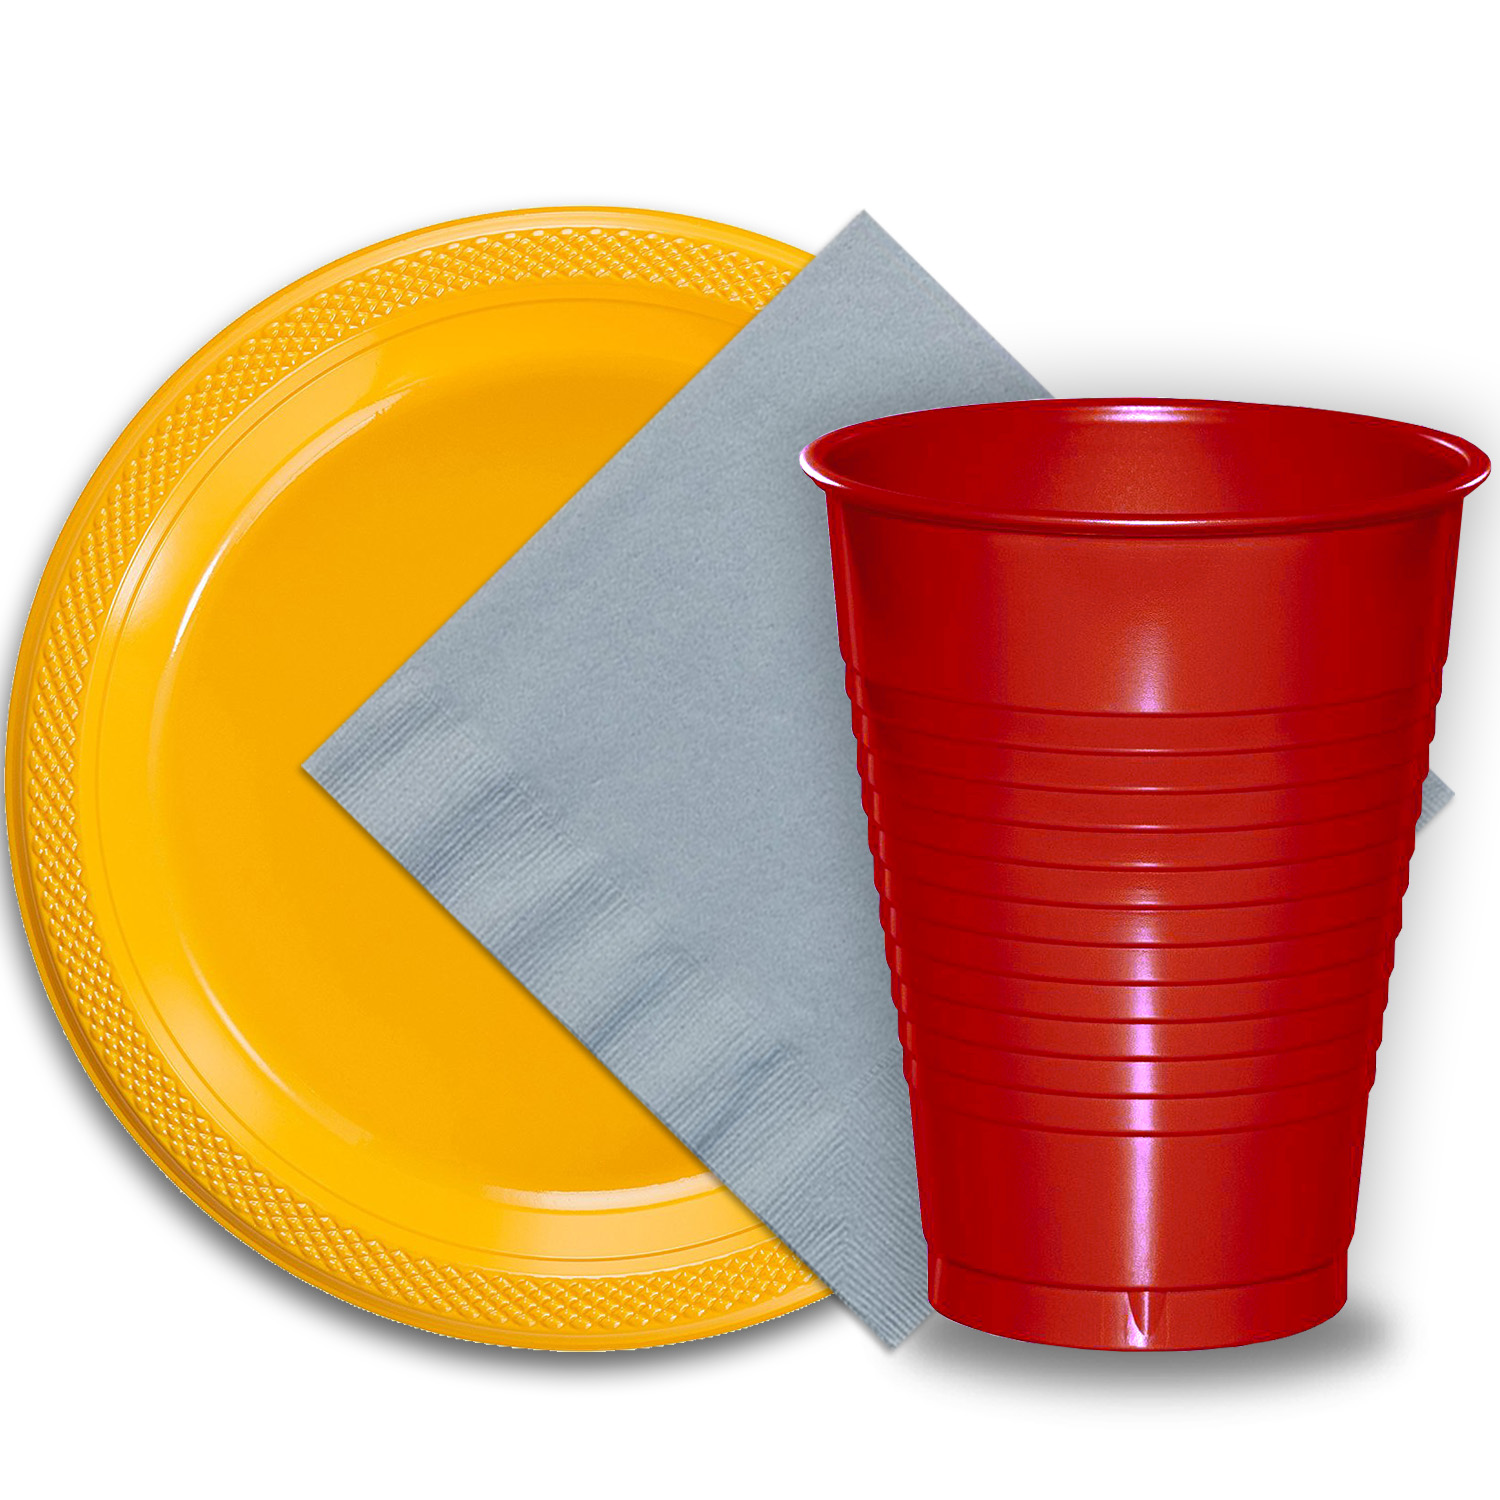 "50 Yellow Plastic Plates (9""), 50 Red Plastic Cups (12 oz.), and 50 Silver Paper Napkins, Dazzelling Colored Disposable Party Supplies Tableware Set for Fifty Guests."